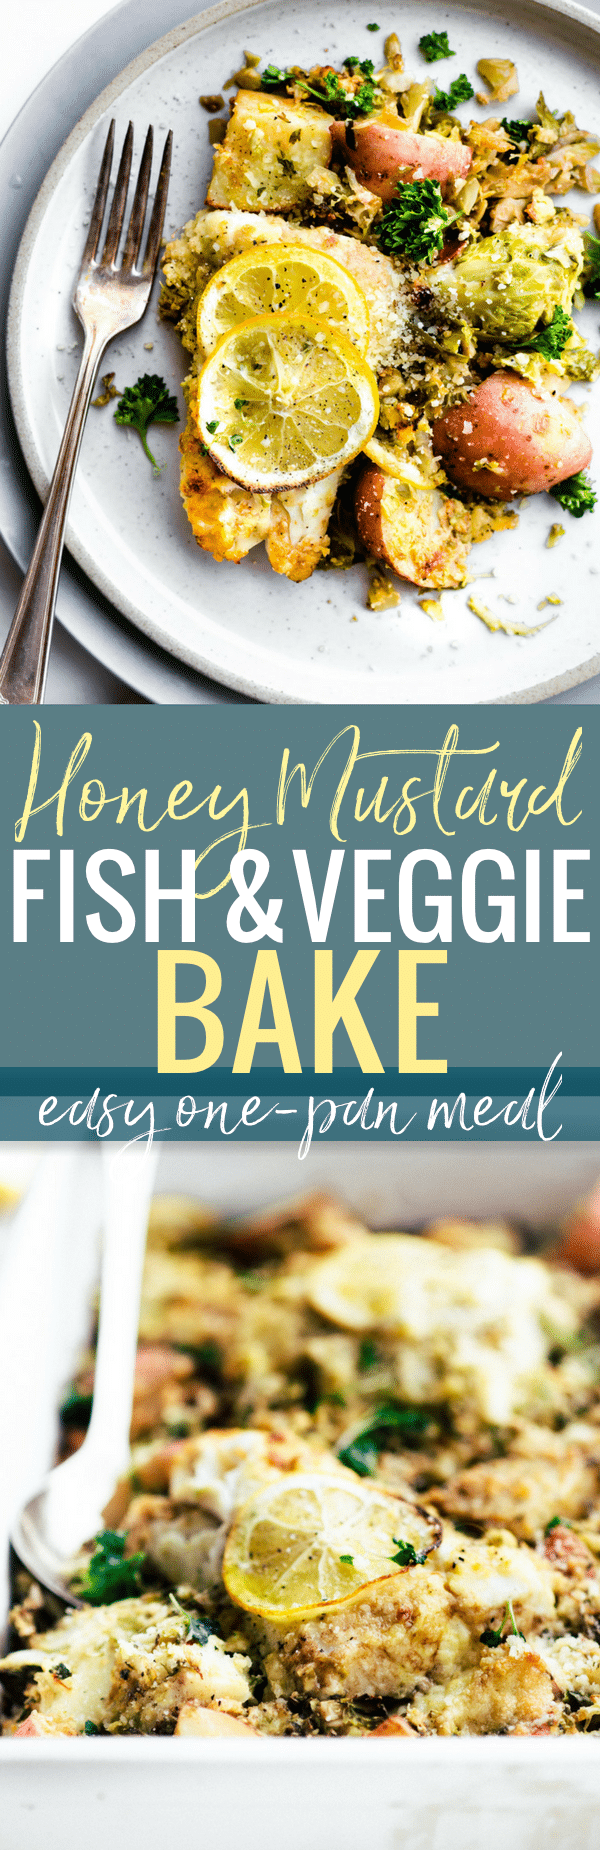 Honey mustard baked fish and vegetable recipe is a quick one pan meal ready in 30 minutes! A complete meal with healthy, lightfish, then baked with wholesome vegetables. Yes, even non fish lovers like it! And all it takes is just a few simple real food ingredients. Promise! Get a healthy dinner on the table in no time ya'll! Paleo friendly.www.cottercrunch.com